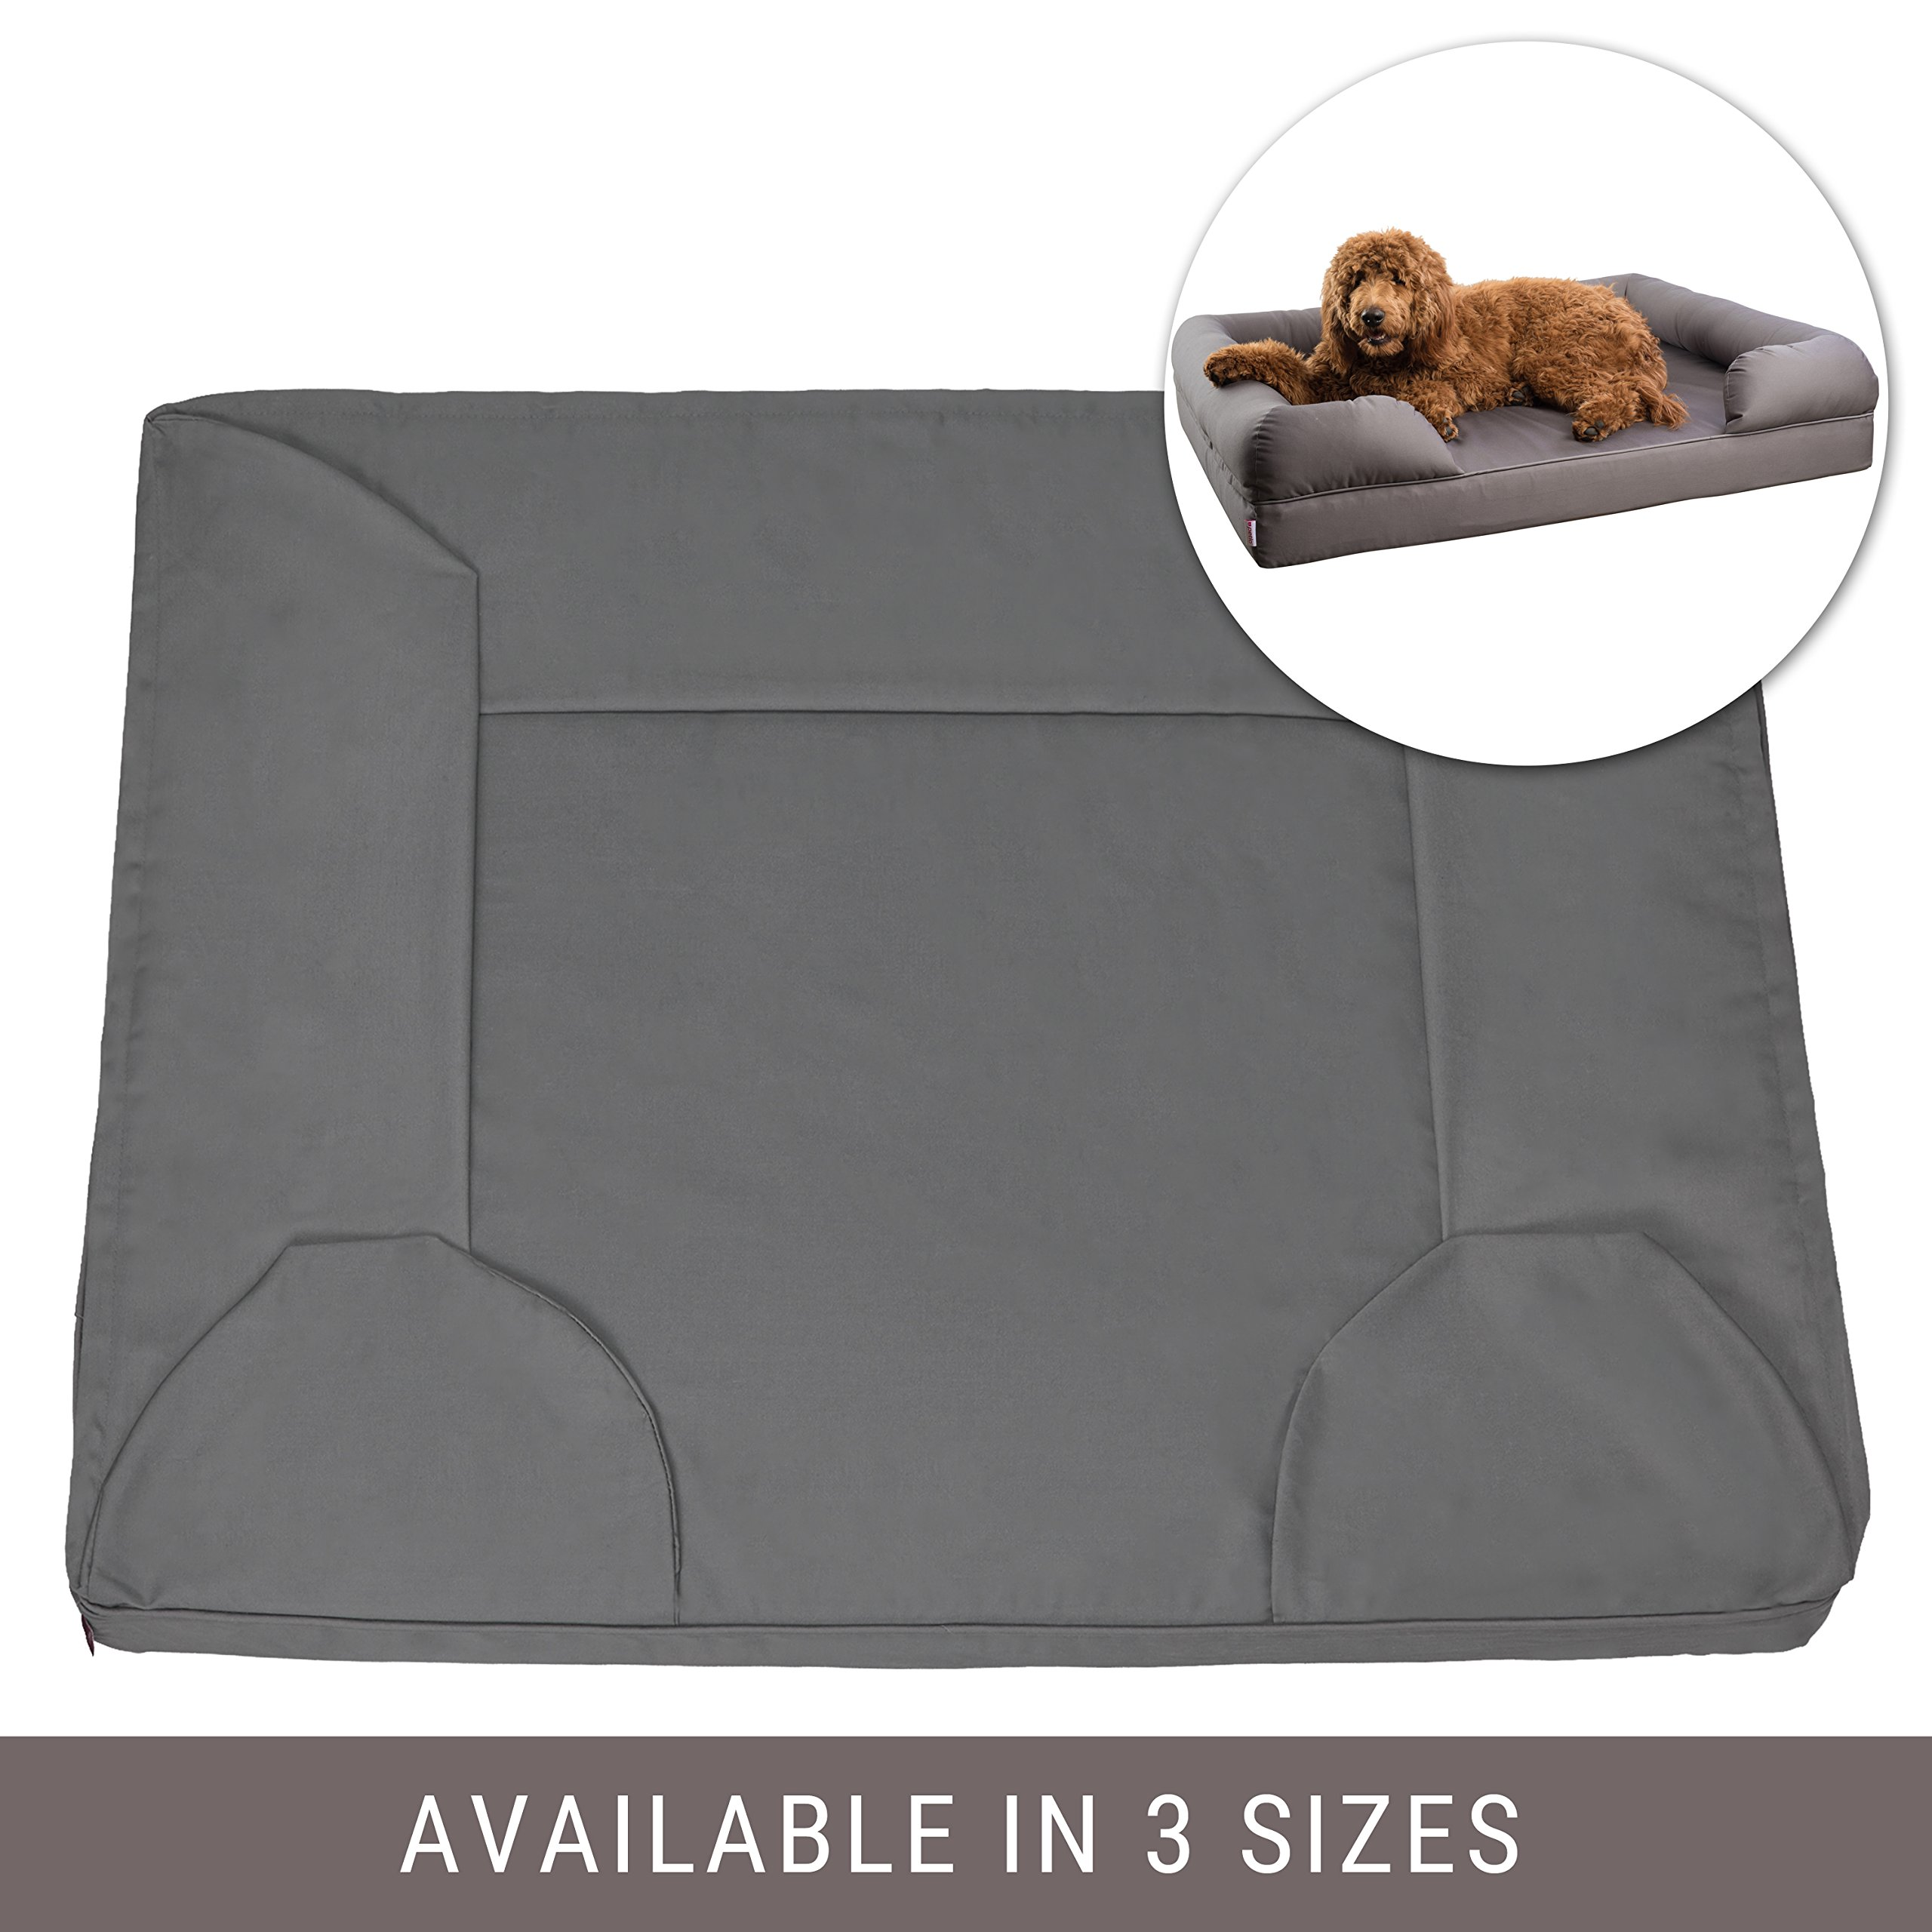 Petlo Gray Pet Sofa Bed Replacement Cover - Removable Water and Scratch Resistant - Machine Washable and Easy to Clean - Dual Zipper with Gusset - Extra Large 46'' x 36'' x 10